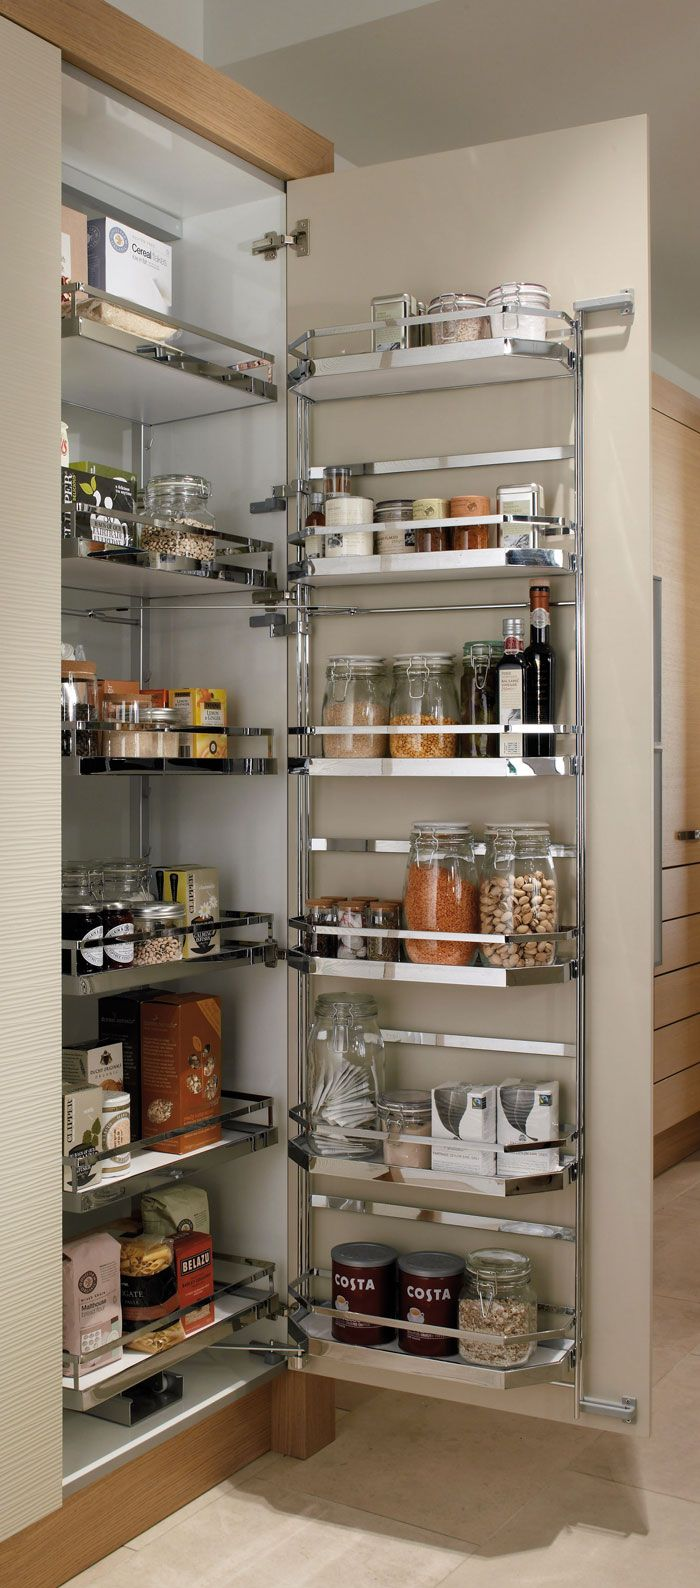 kitchen dressers our pick of the best kitchen cupboard storagedoor - Kitchen Cabinets Storage Ideas